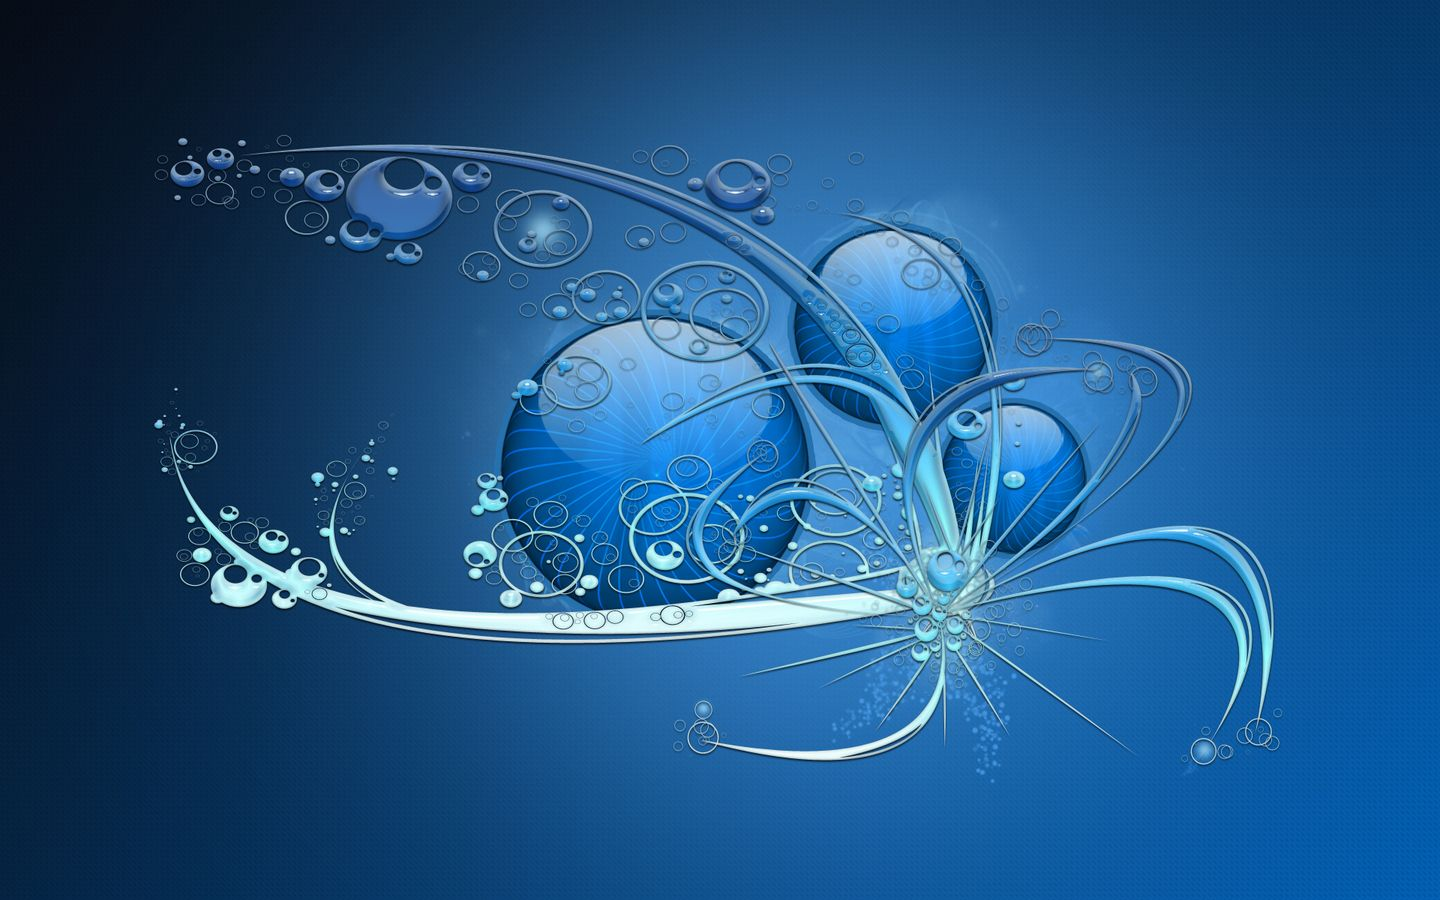 Love Hd Wallpaper Widescreen 3d : Beautiful Pure Abstract Blue Background Desktop ...